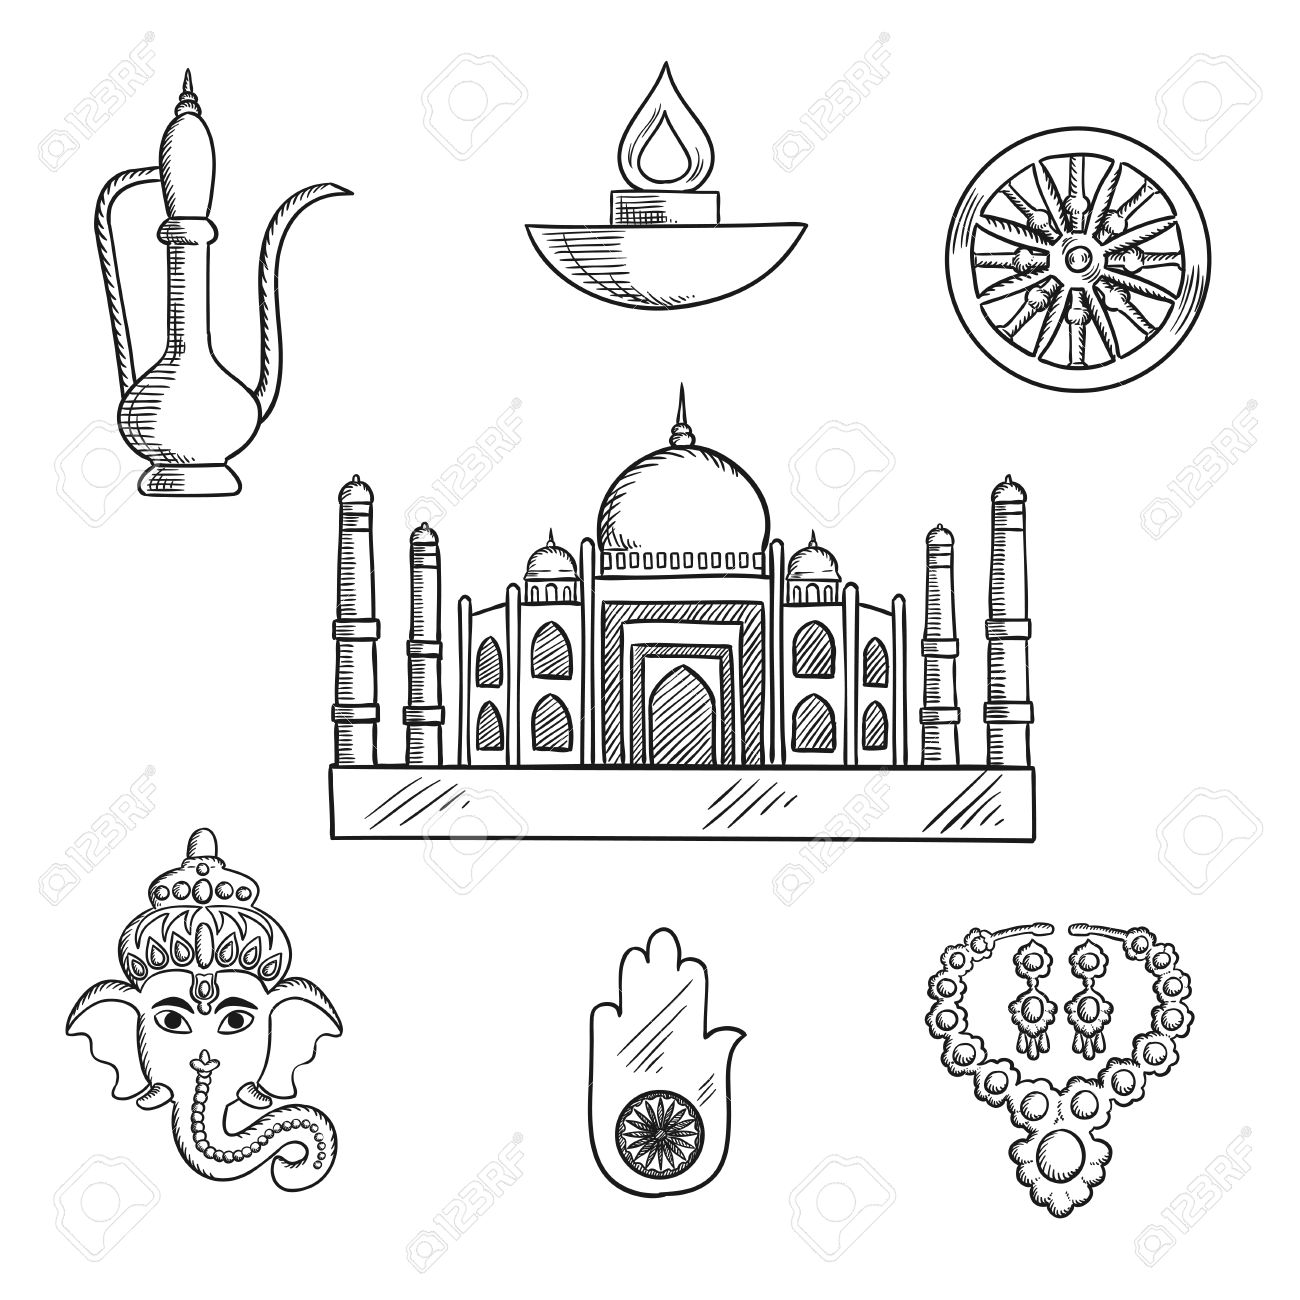 1300x1300 Indian Religion And Culture Symbols With Ganesha God And Element